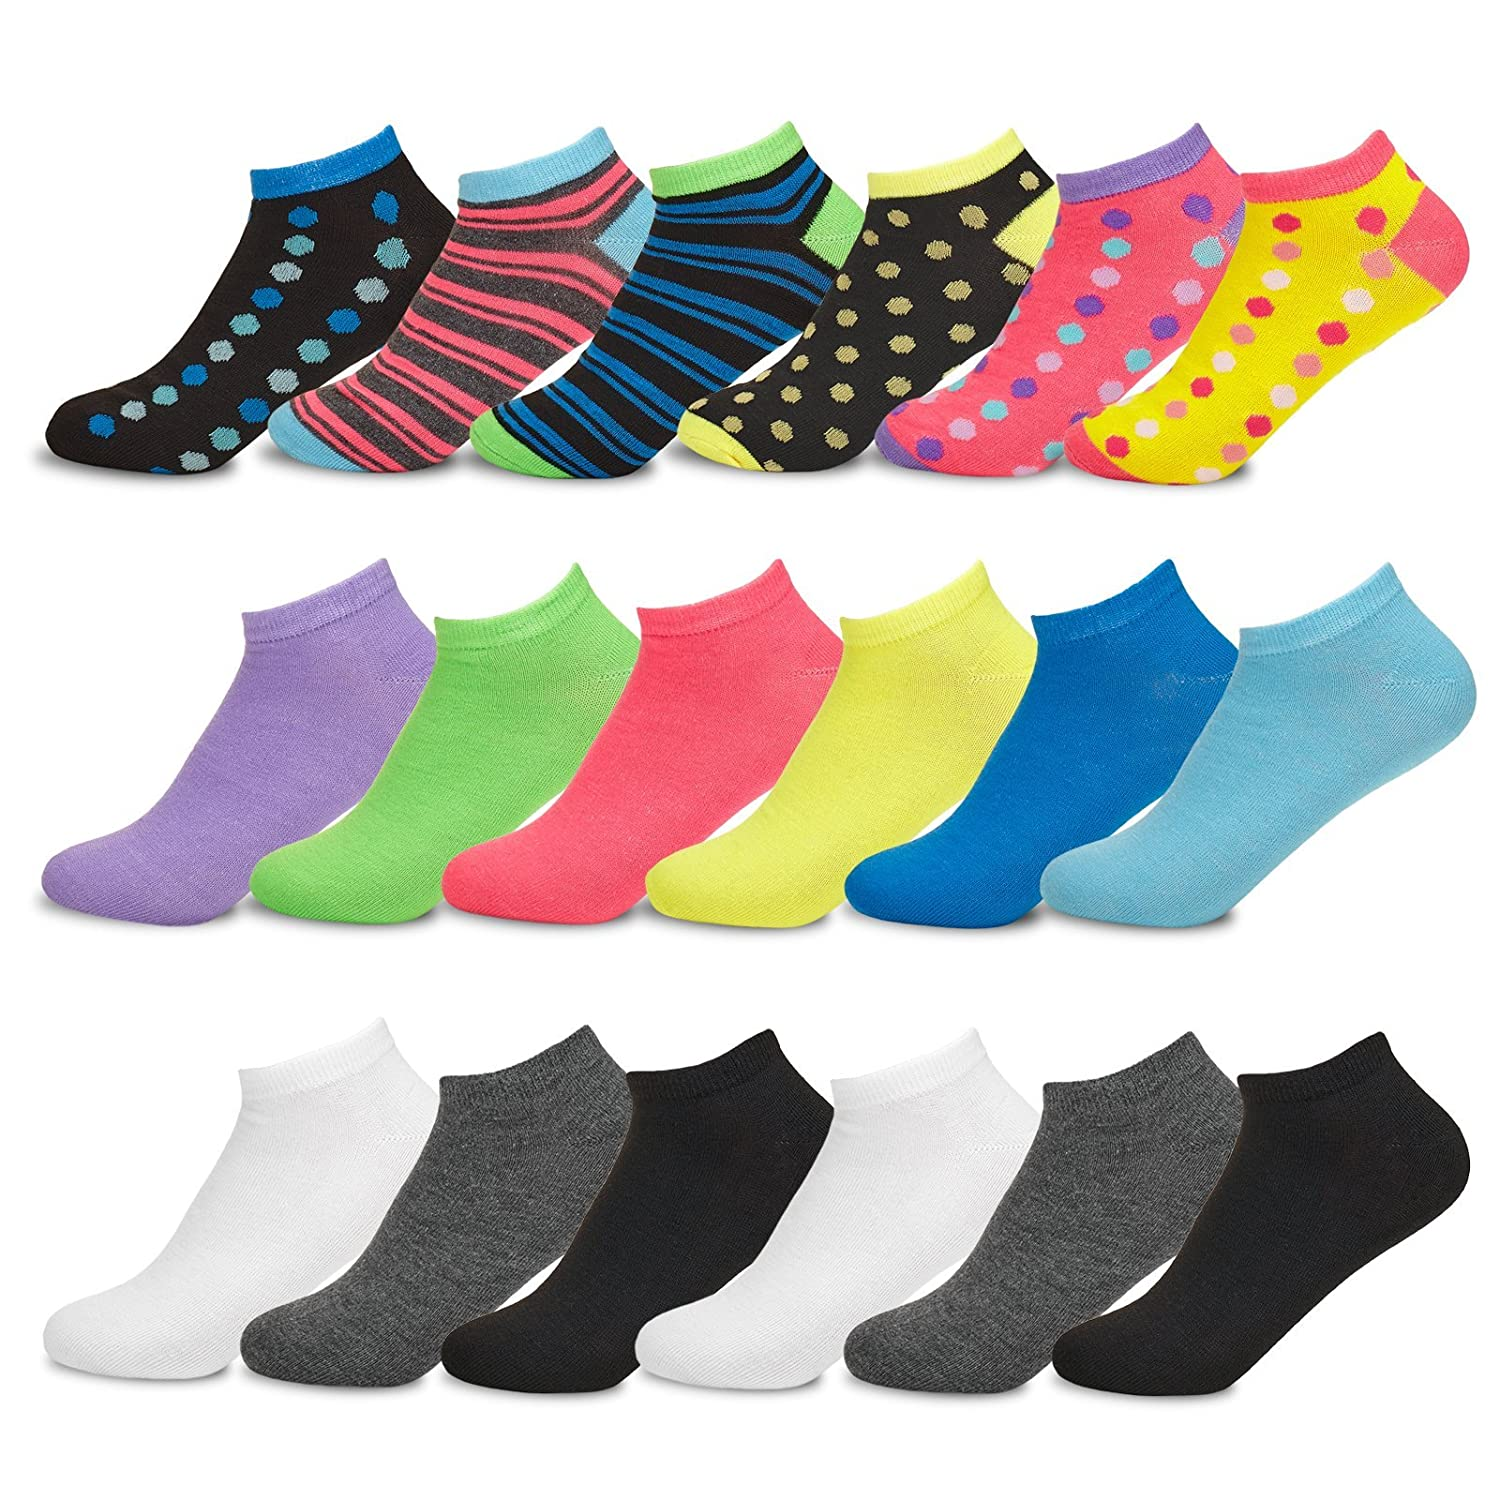 Women's No-Show Low Cut Socks - Sockletics by Hot Feet, Value Pack of 18 Pairs Stripes and Dots - Size 9-11 Shoe Size 4-10.5